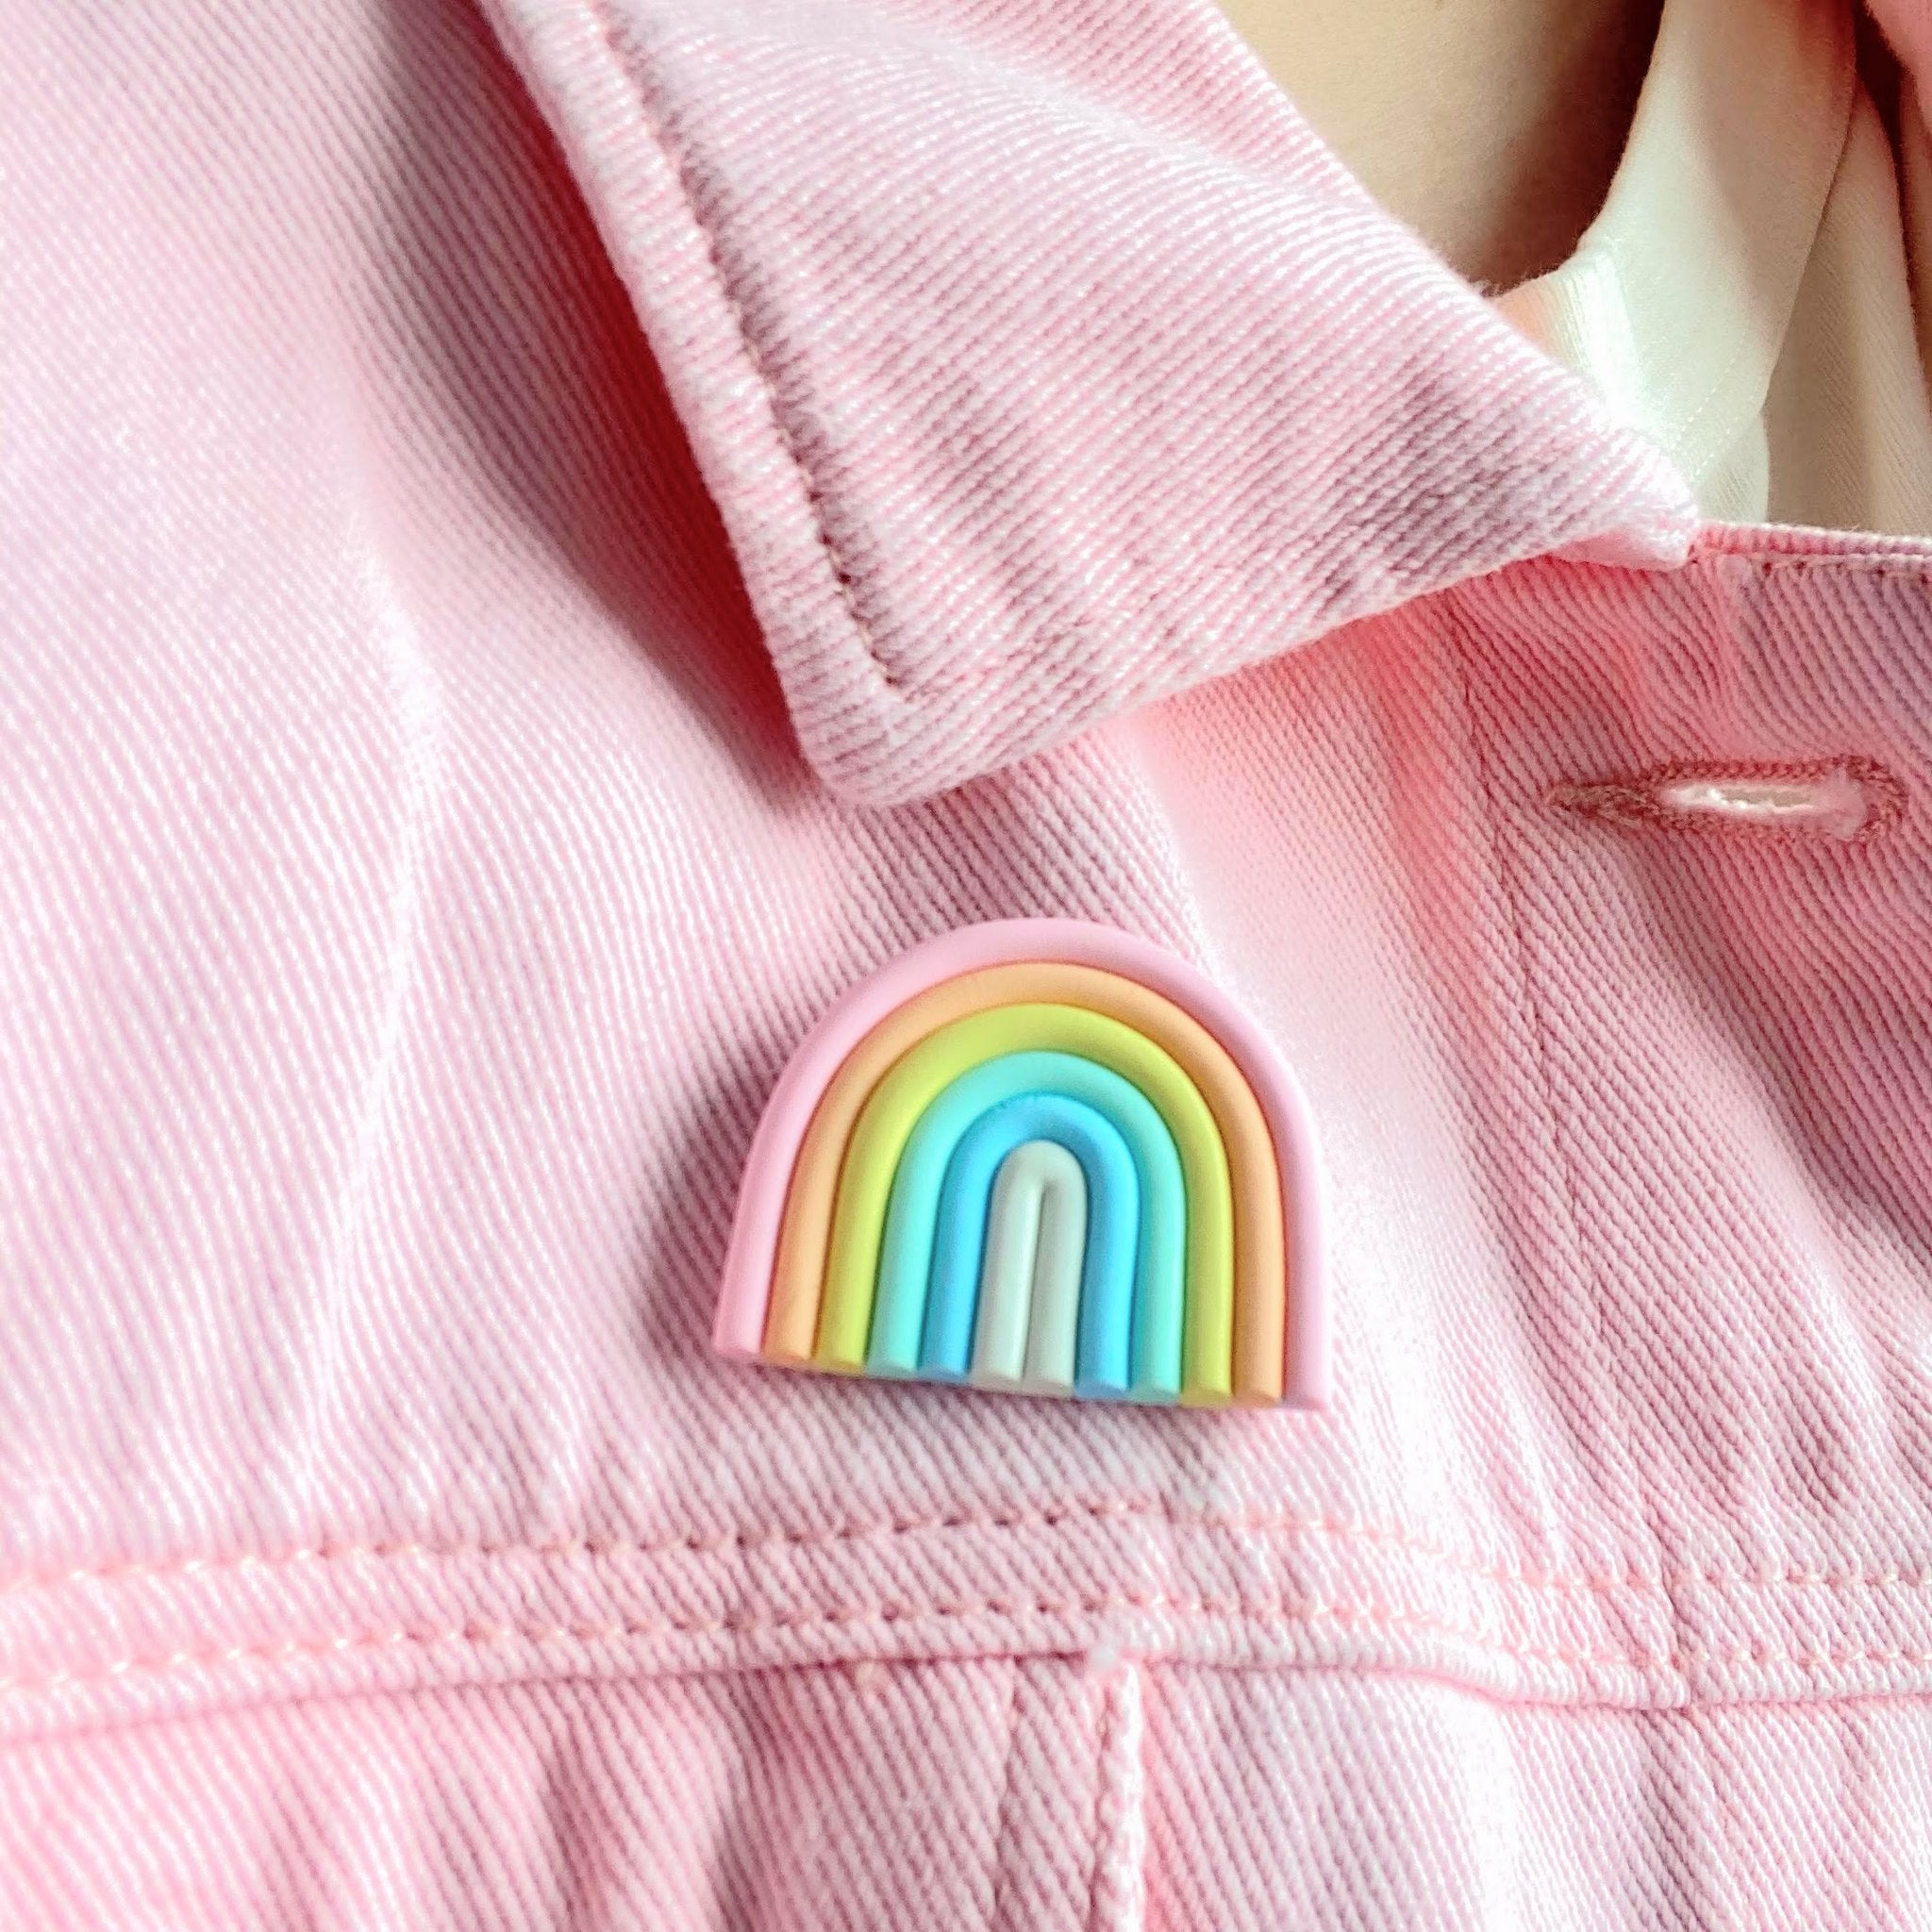 the pastel pink, orange, yellow, blue, and white pin on a pink jean jacket